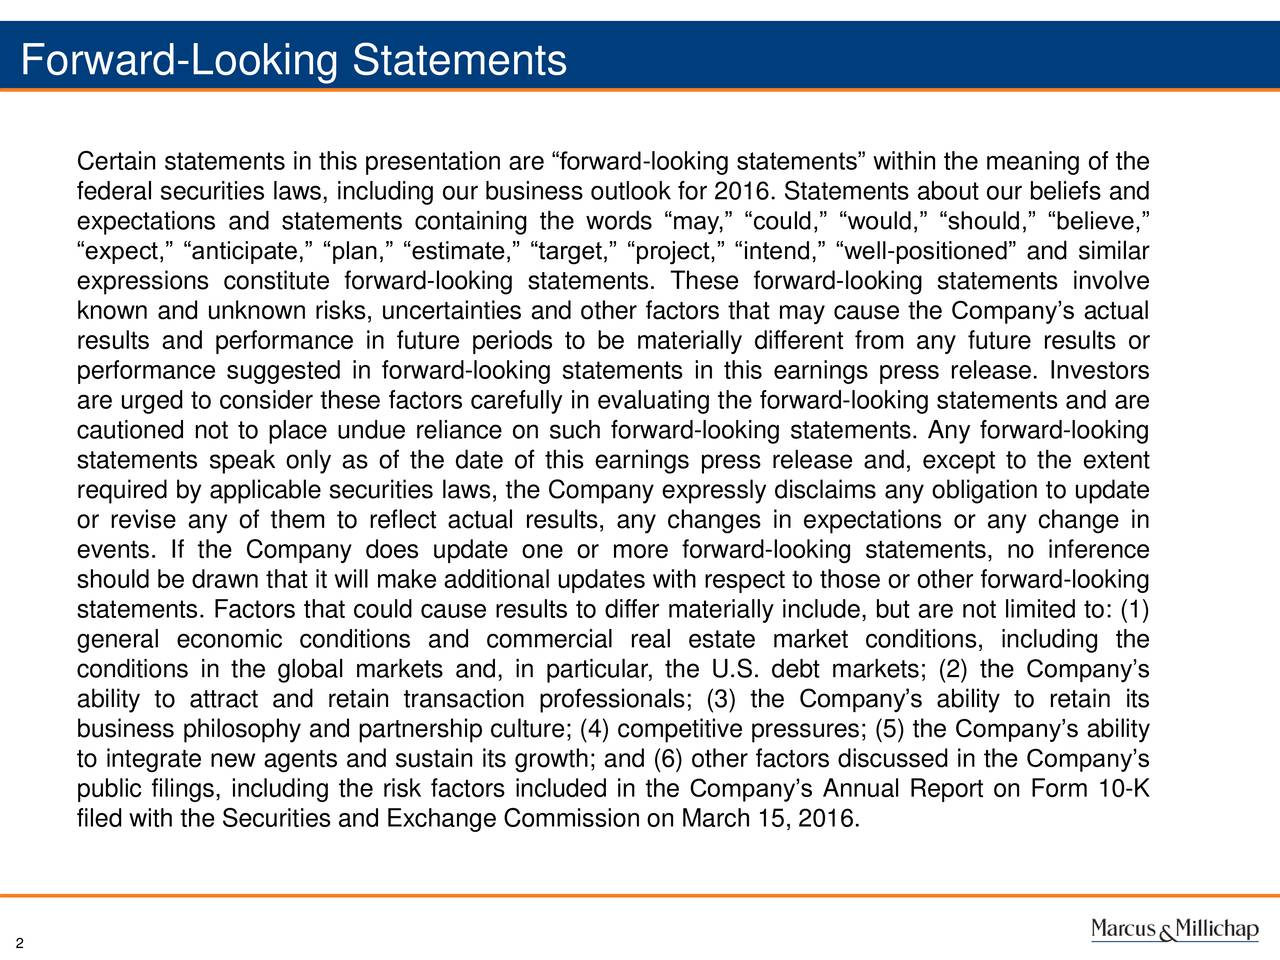 Certain statements in this presentation are forward-looking statements within the meaning of the federal securities laws, including our business outlook for 2016. Statements about our beliefs and expectations and statements containing the words may, could, would, should, believe, expect, anticipate, plan, estimate, target, project, intend, well-positioned and similar expressions constitute forward-looking statements. These forward-looking statements involve known and unknown risks, uncertainties and other factors that may cause the Companys actual results and performance in future periods to be materially different from any future results or performance suggested in forward-looking statements in this earnings press release. Investors are urged to consider these factors carefully in evaluating the forward-looking statements and are cautioned not to place undue reliance on such forward-looking statements. Any forward-looking statements speak only as of the date of this earnings press release and, except to the extent required by applicable securities laws, the Company expressly disclaims any obligation to update or revise any of them to reflect actual results, any changes in expectations or any change in events. If the Company does update one or more forward-looking statements, no inference should be drawn that it will make additional updates with respect to those or other forward-looking statements. Factors that could cause results to differ materially include, but are not limited to: (1) general economic conditions and commercial real estate market conditions, including the conditions in the global markets and, in particular, the U.S. debt markets; (2) the Companys ability to attract and retain transaction professionals; (3) the Companys ability to retain its business philosophy and partnership culture; (4) competitive pressures; (5) the Companys ability to integrate new agents and sustain its growth; and (6) other factors discussed in the Companys public filings, i